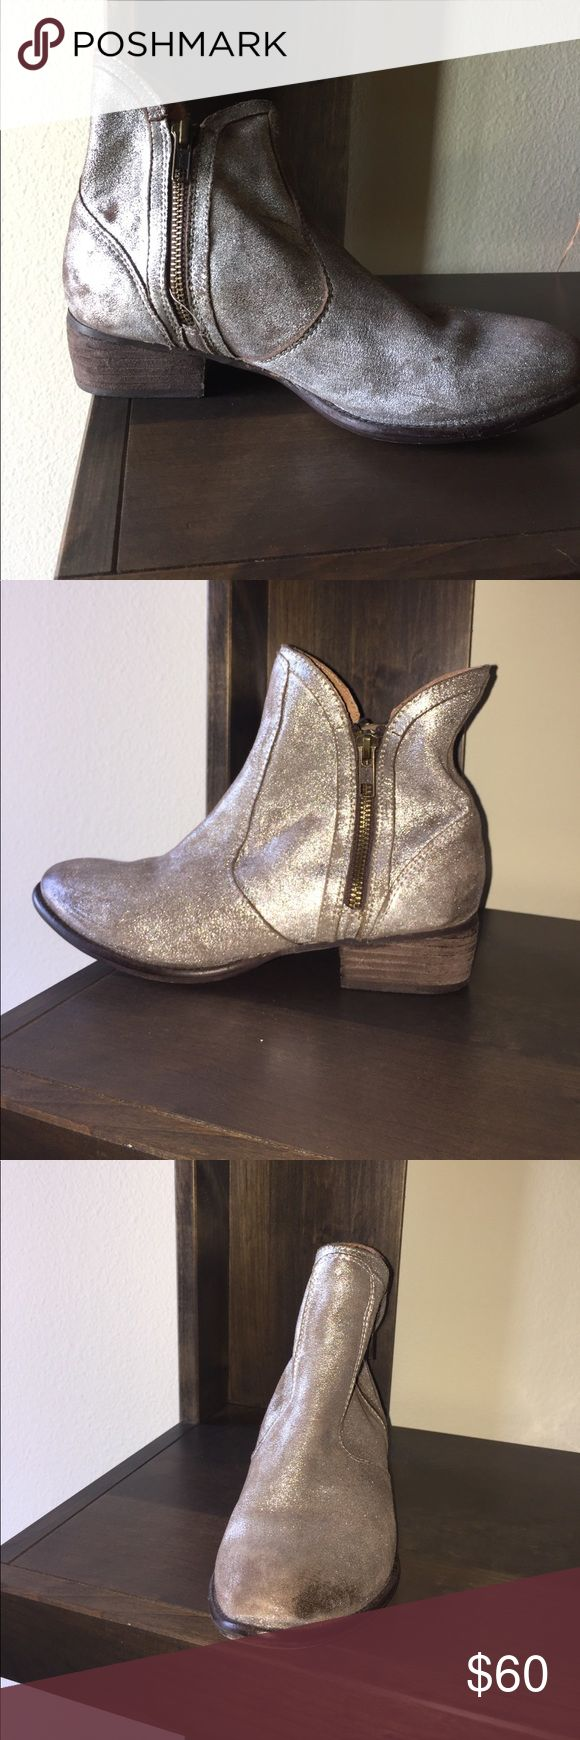 Ankle boots Like new ankle boots Seychelles Shoes Ankle Boots & Booties